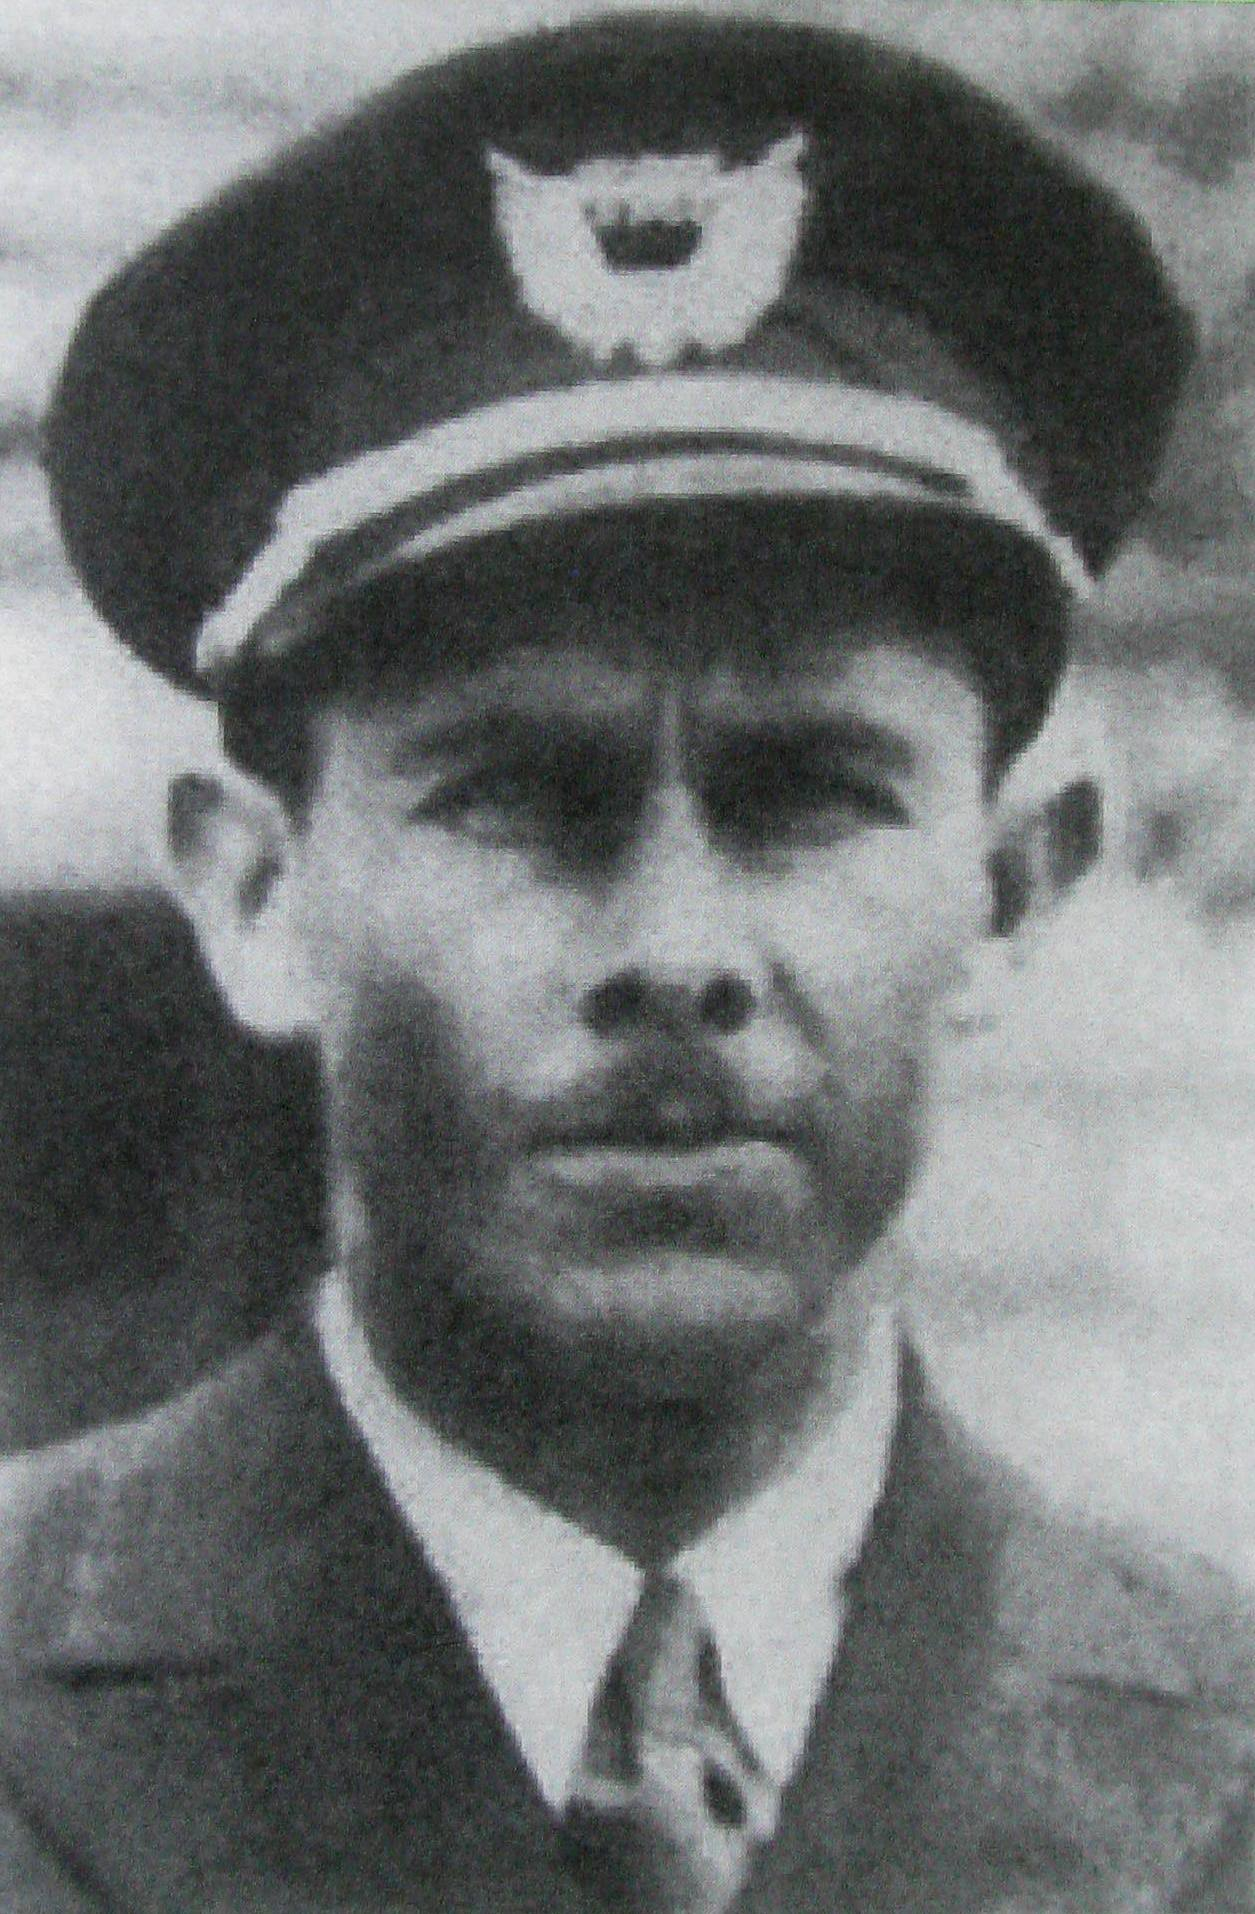 Captain Jesse B. Stowe, age 29, was one of 34 veteran T.A.T. pilots selected for the new transcontinental service. Each captain was required to have at least 3,000 hours of flight time with at least 500 hours of experience in the Ford Tri-Motor aircraft.<br /> <br /> With Army flight training and several years experience, Captain Stowe was considered to be one of T.A.T.'s best pilots.